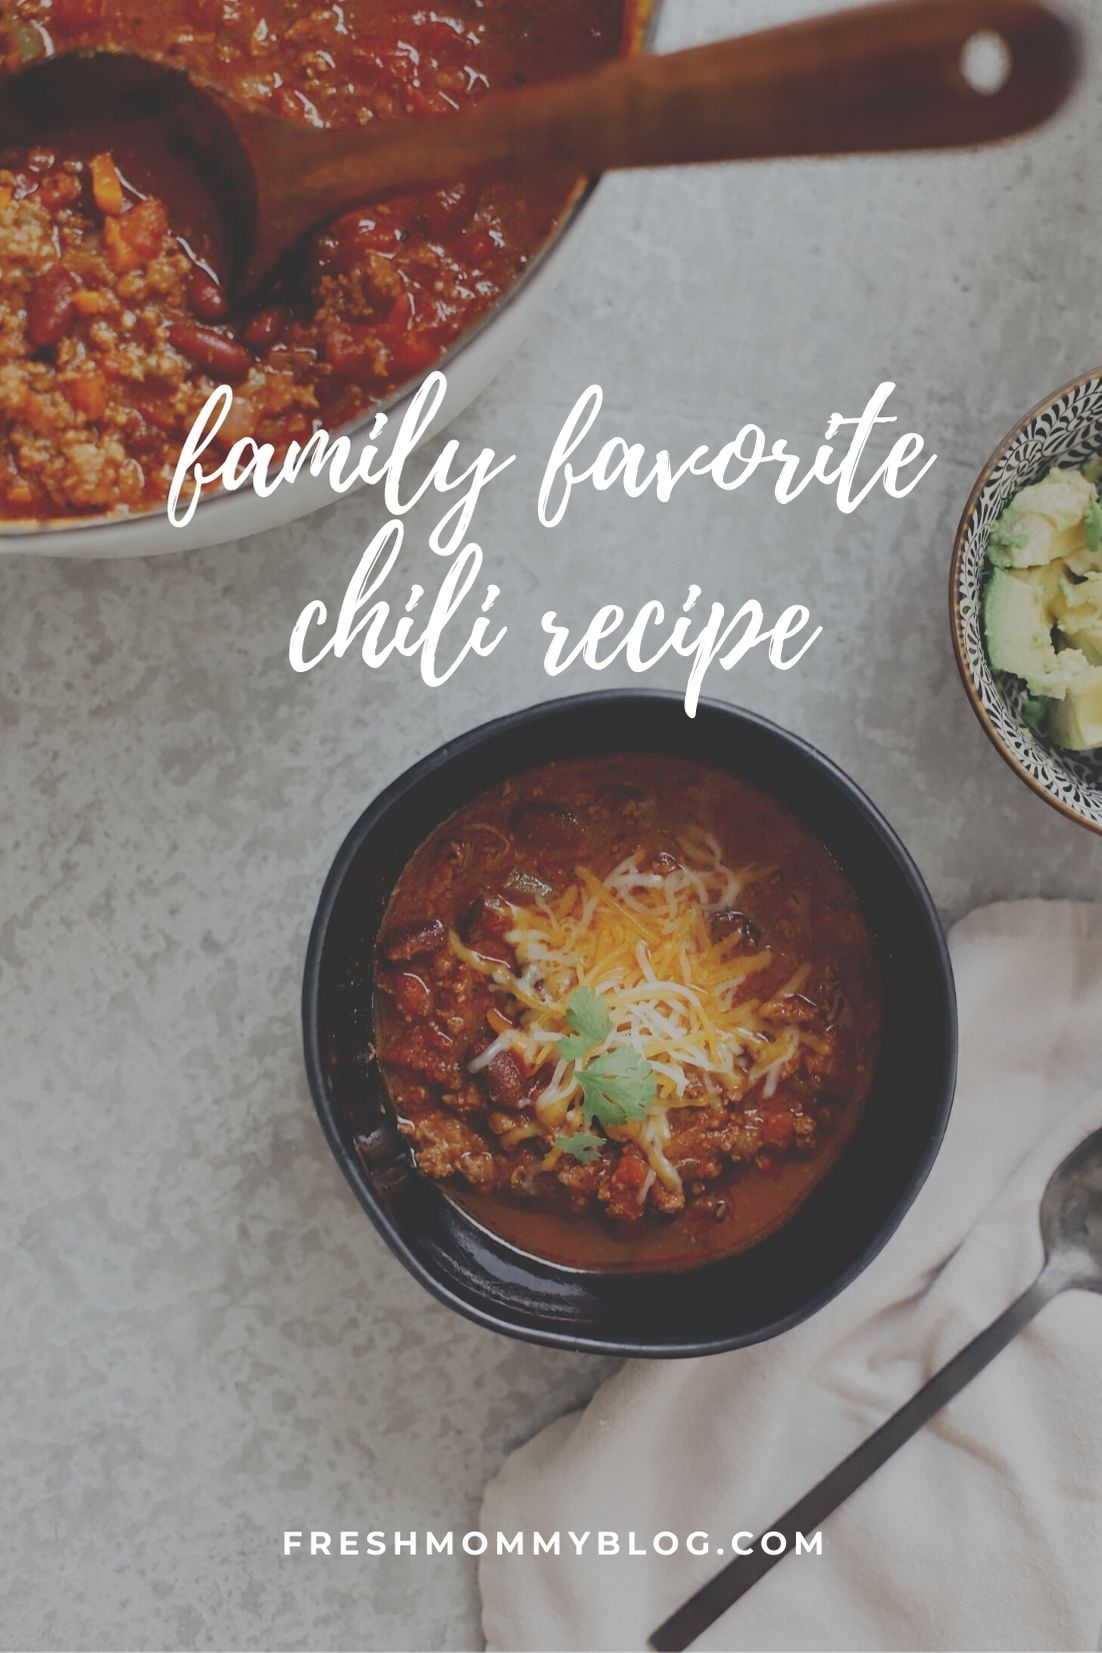 Easy Family Favorite Chili recipe! Make this delicious classic homemade chili in the crockpot or in one pot easily. It's THE BEST CHILI, and my family asks me to make it over and over. | Chili Recipe by popular Florida lifestyle blog, Fresh Mommy Blog: Pinterest image of chili in a black ceramic bowl with shredded cheese on top.